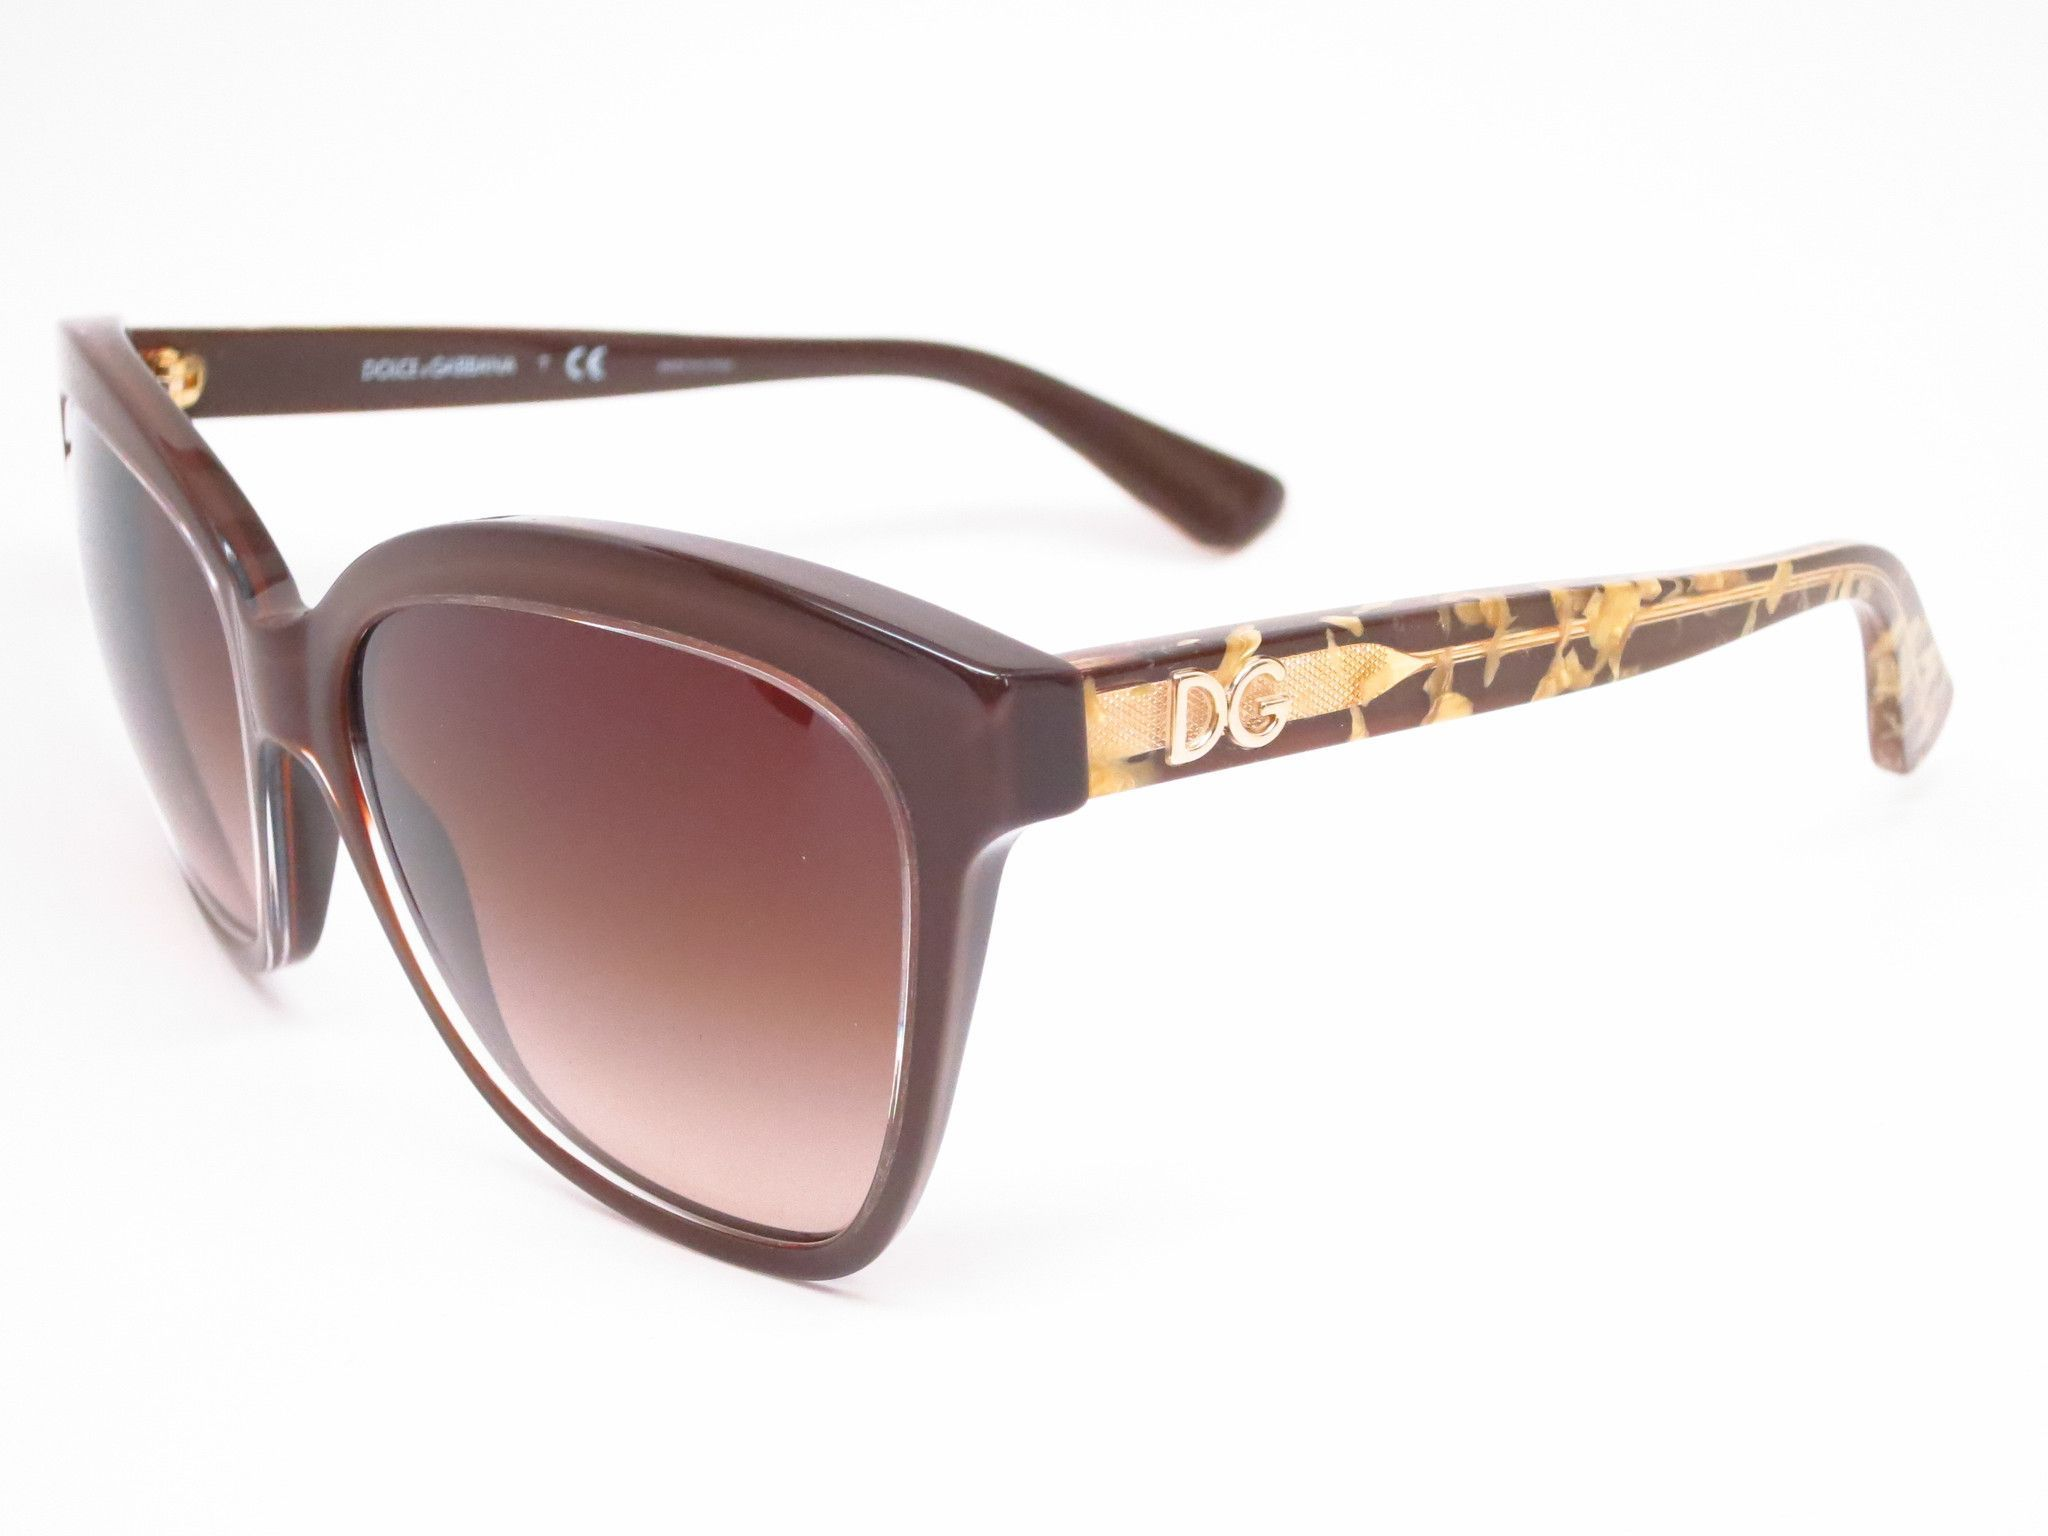 04e265579e9 Features of the Dolce   Gabbana DG 4251 - A gloss finish acetate frames -  From the DNA collection - 100% UV protection from the suns harmful  ultra-violet ...